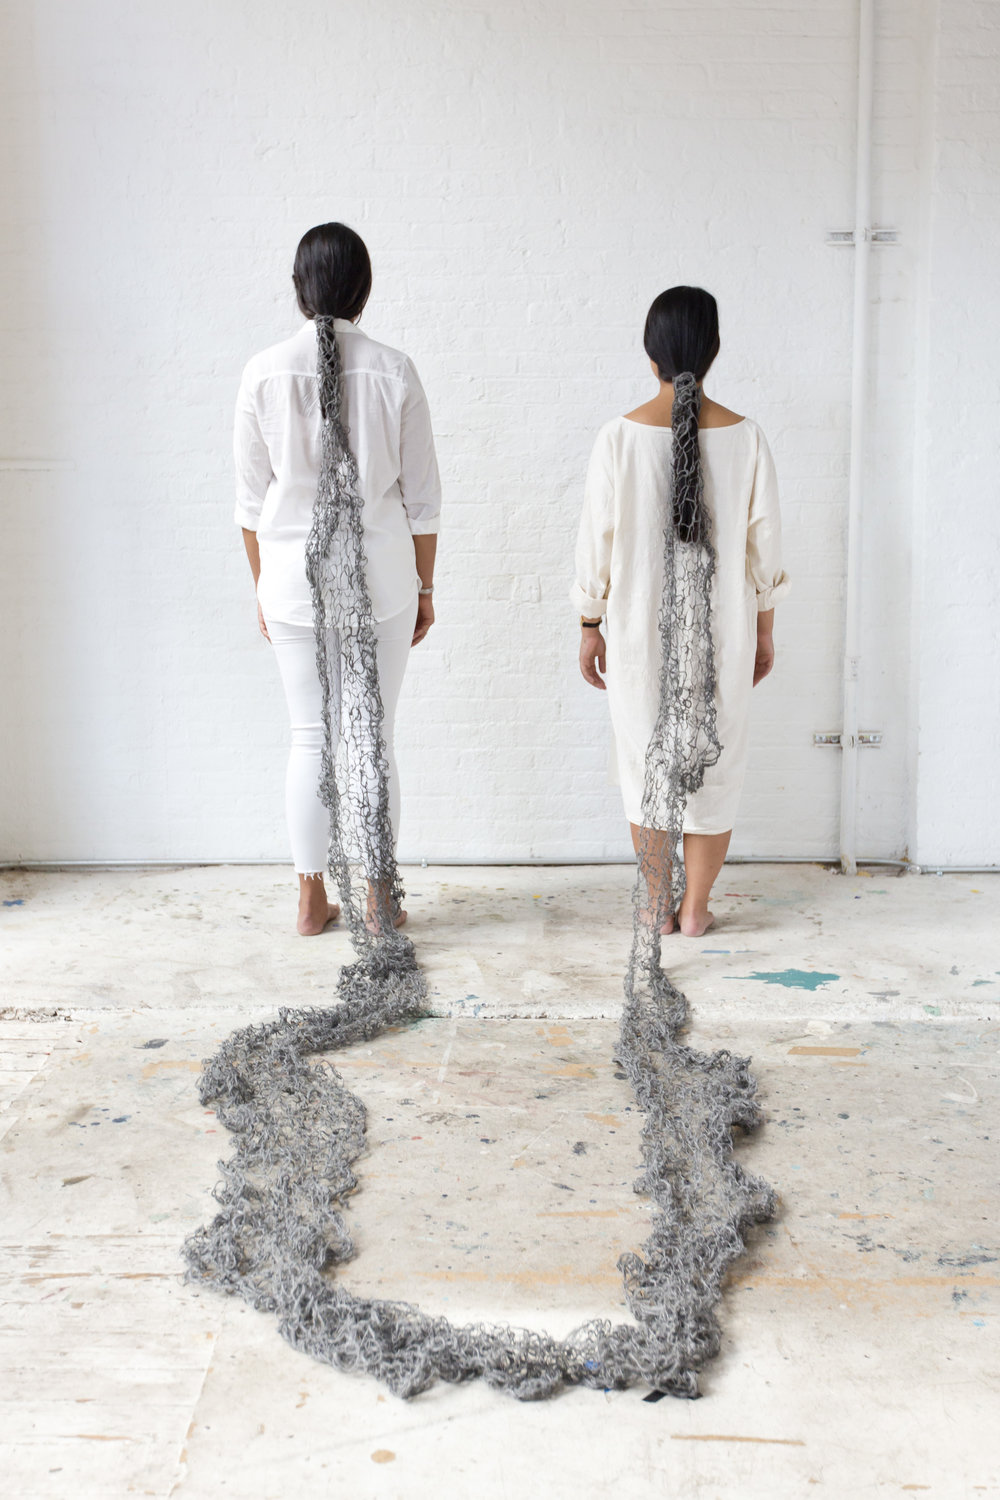 Image of Swati Kapur and the artist with the back to their backs to the camera, showing their long black hair being tied together by the steel wool yarn. The steel wool blanket flows from Swati's hair to the floor to the artist's hair.